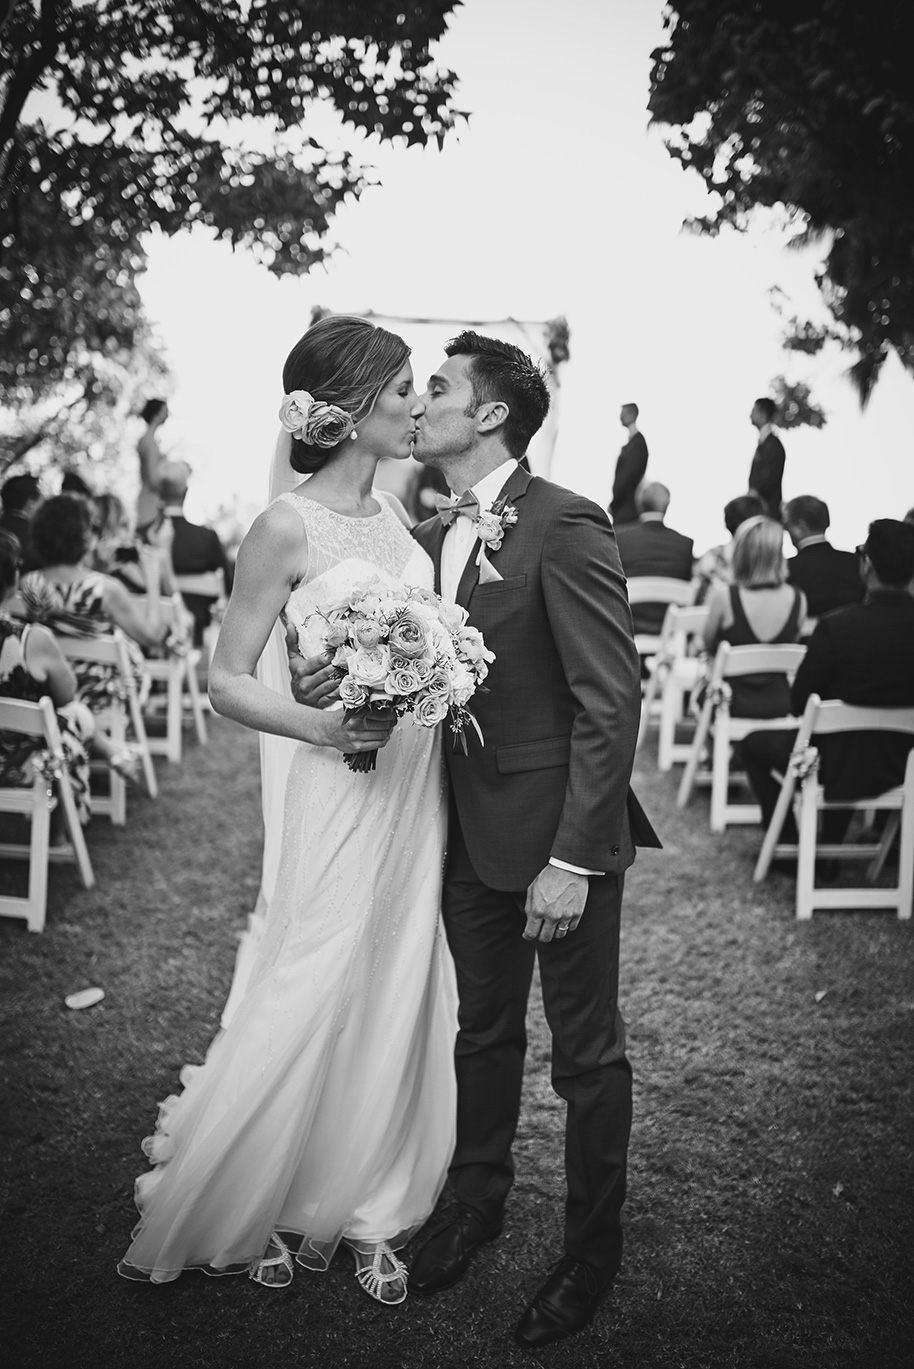 Hawaii-Wedding-Stephen-Ludwig-032916-19